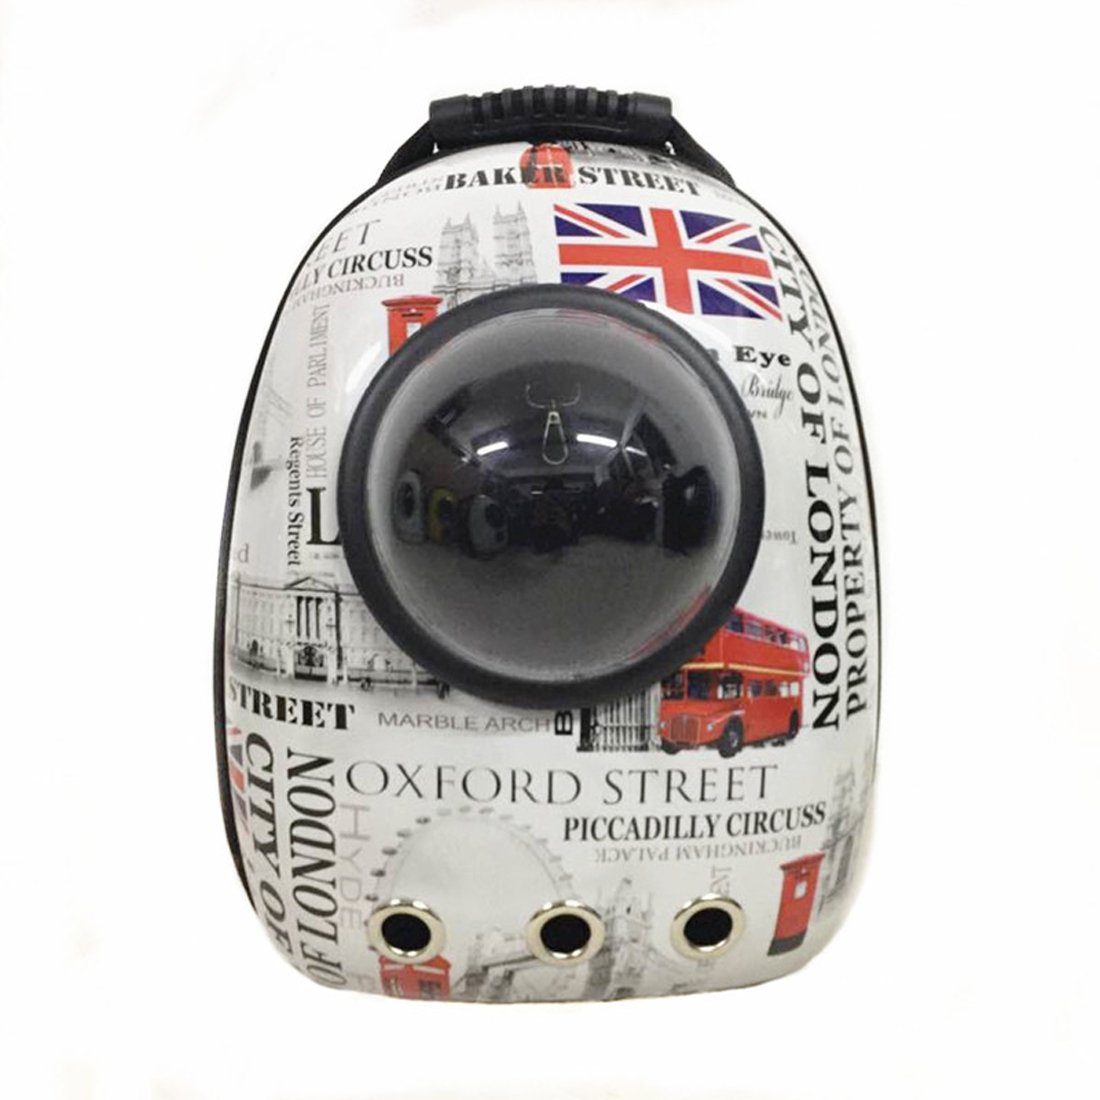 Pet Portable Carrier Bubble Backpack Pet Carriers Innovative Traveler for Cats Dogs Space Capsule Backpack